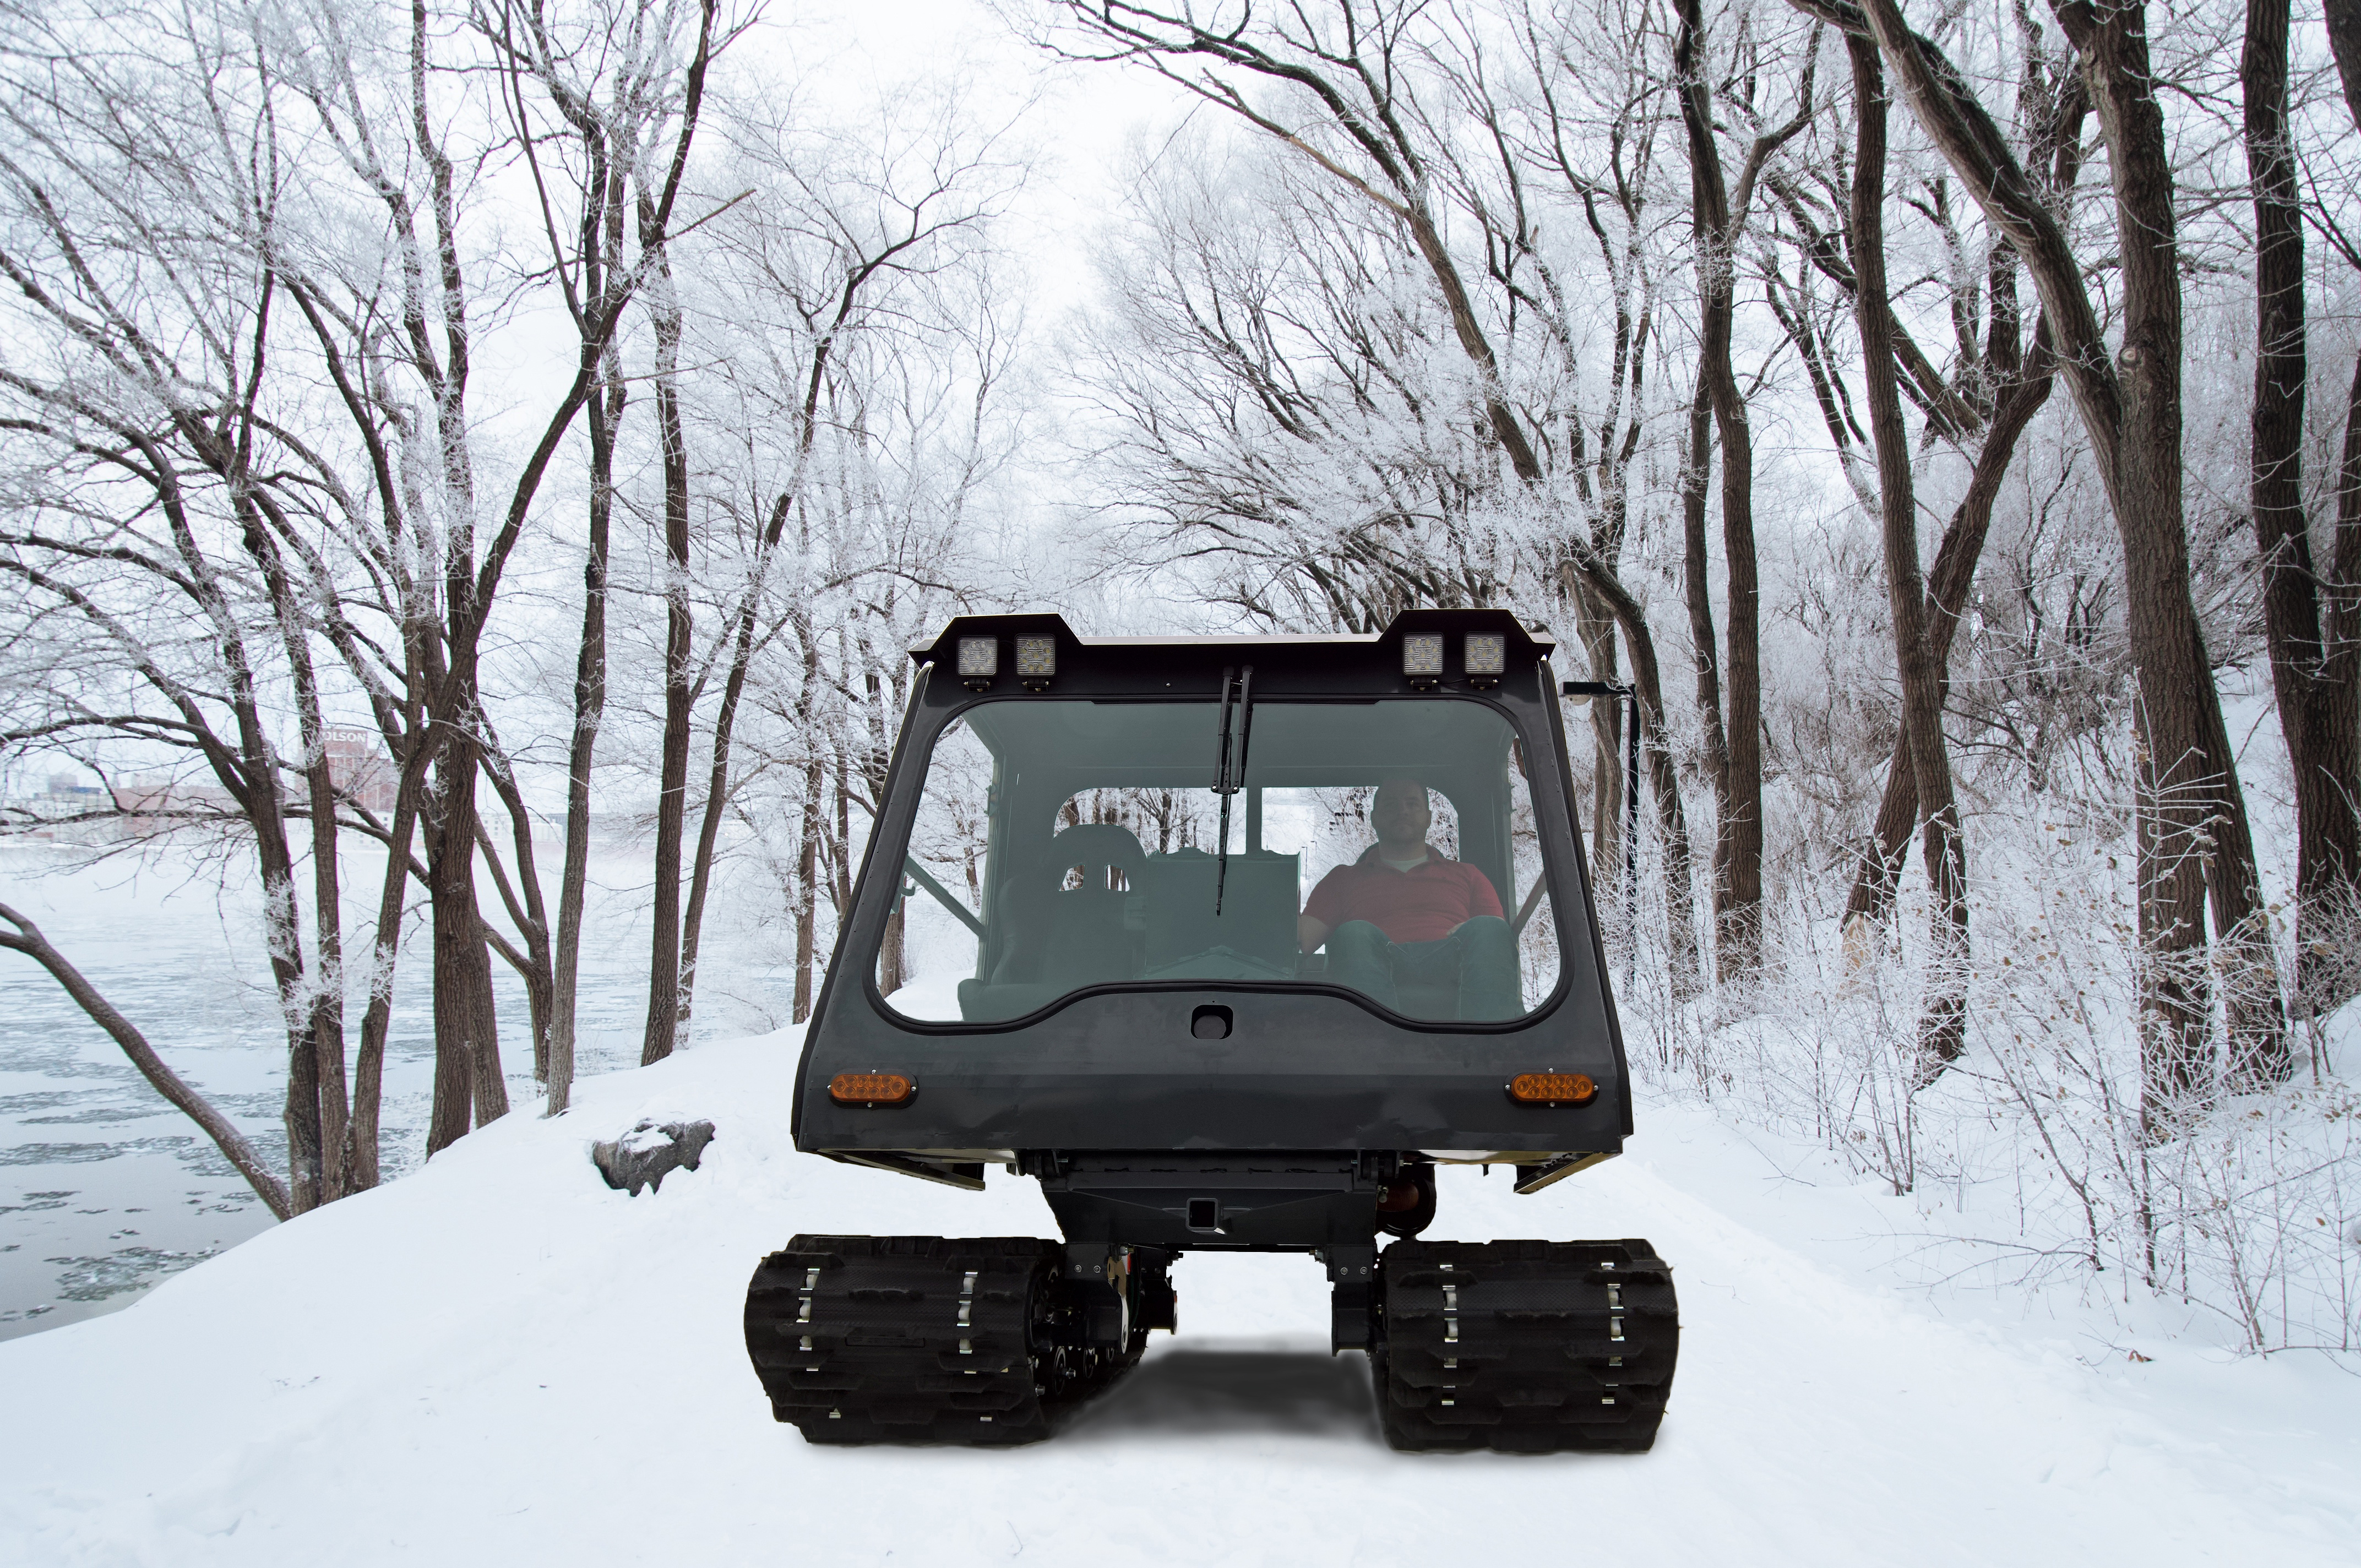 Personal Winter Tracked Vehicle, Remote Access Machine